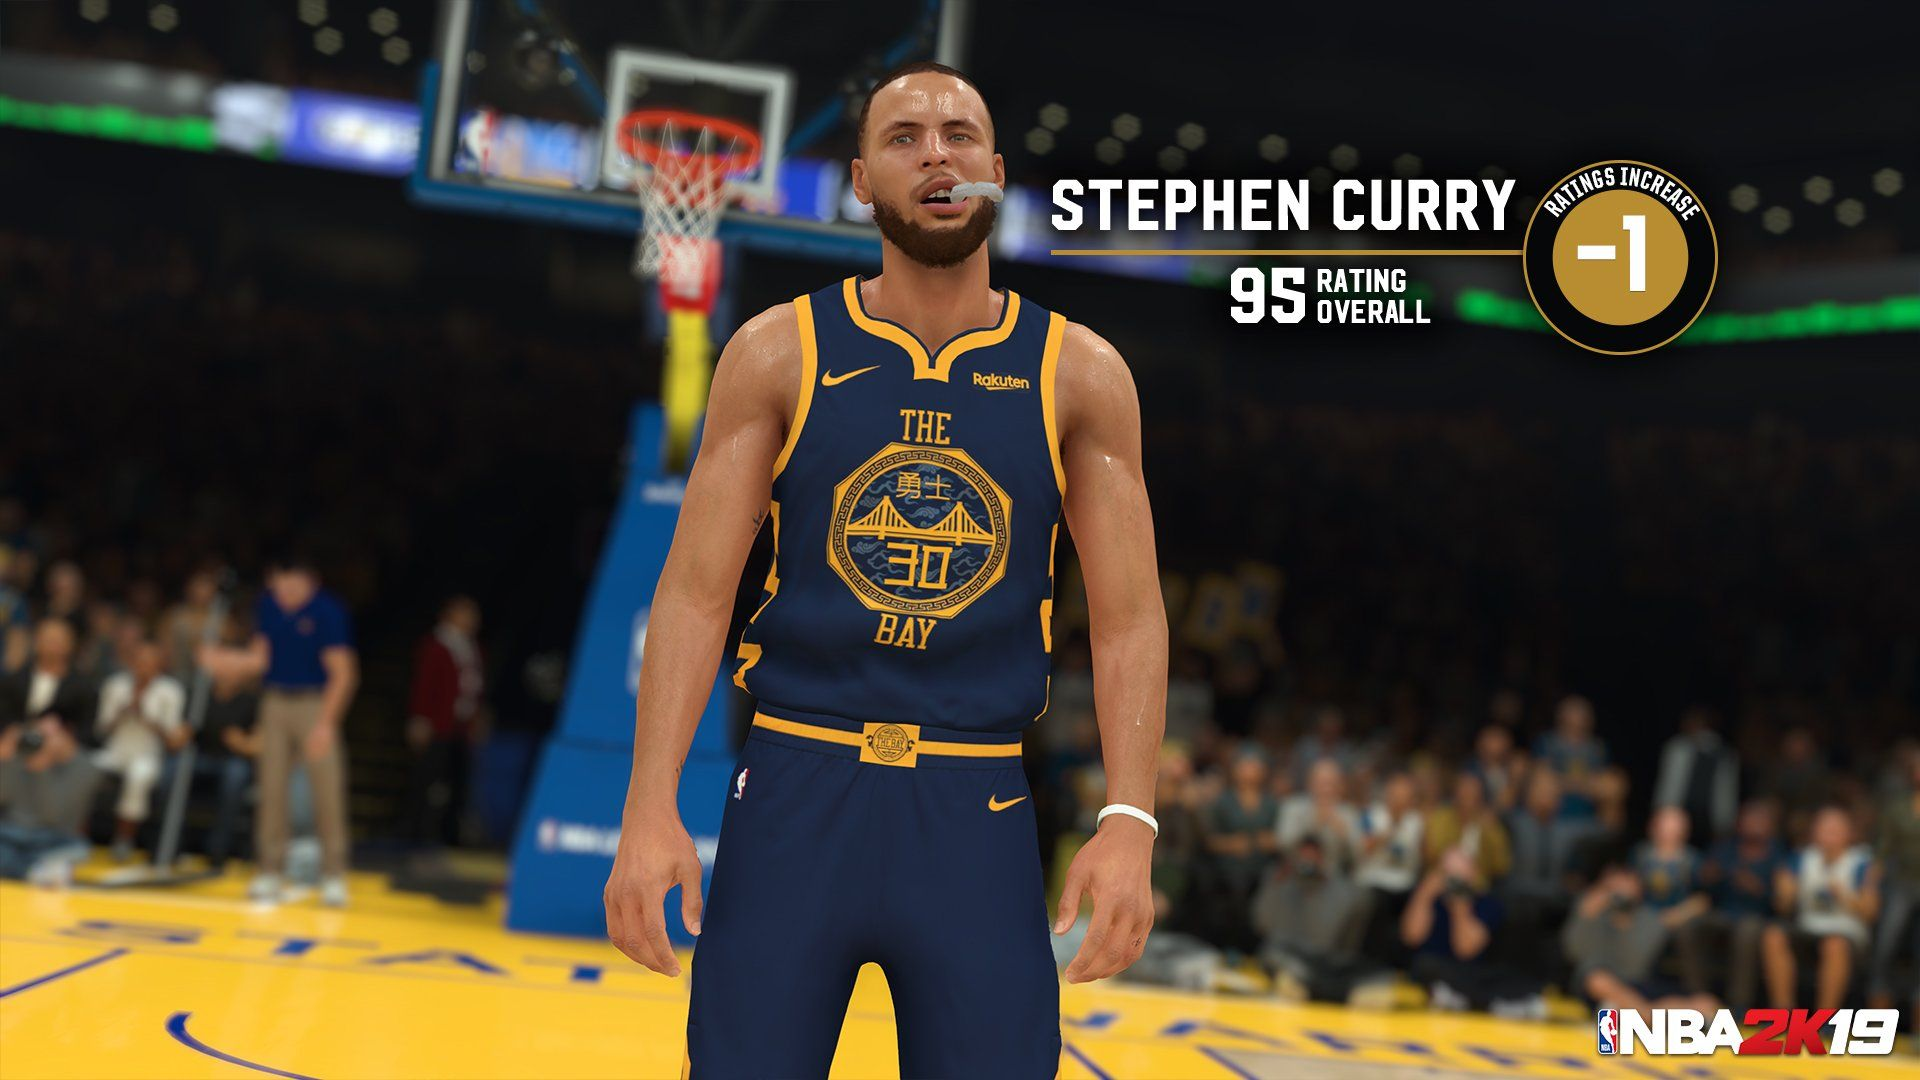 NBA 2K19 Steph Curry ratings update